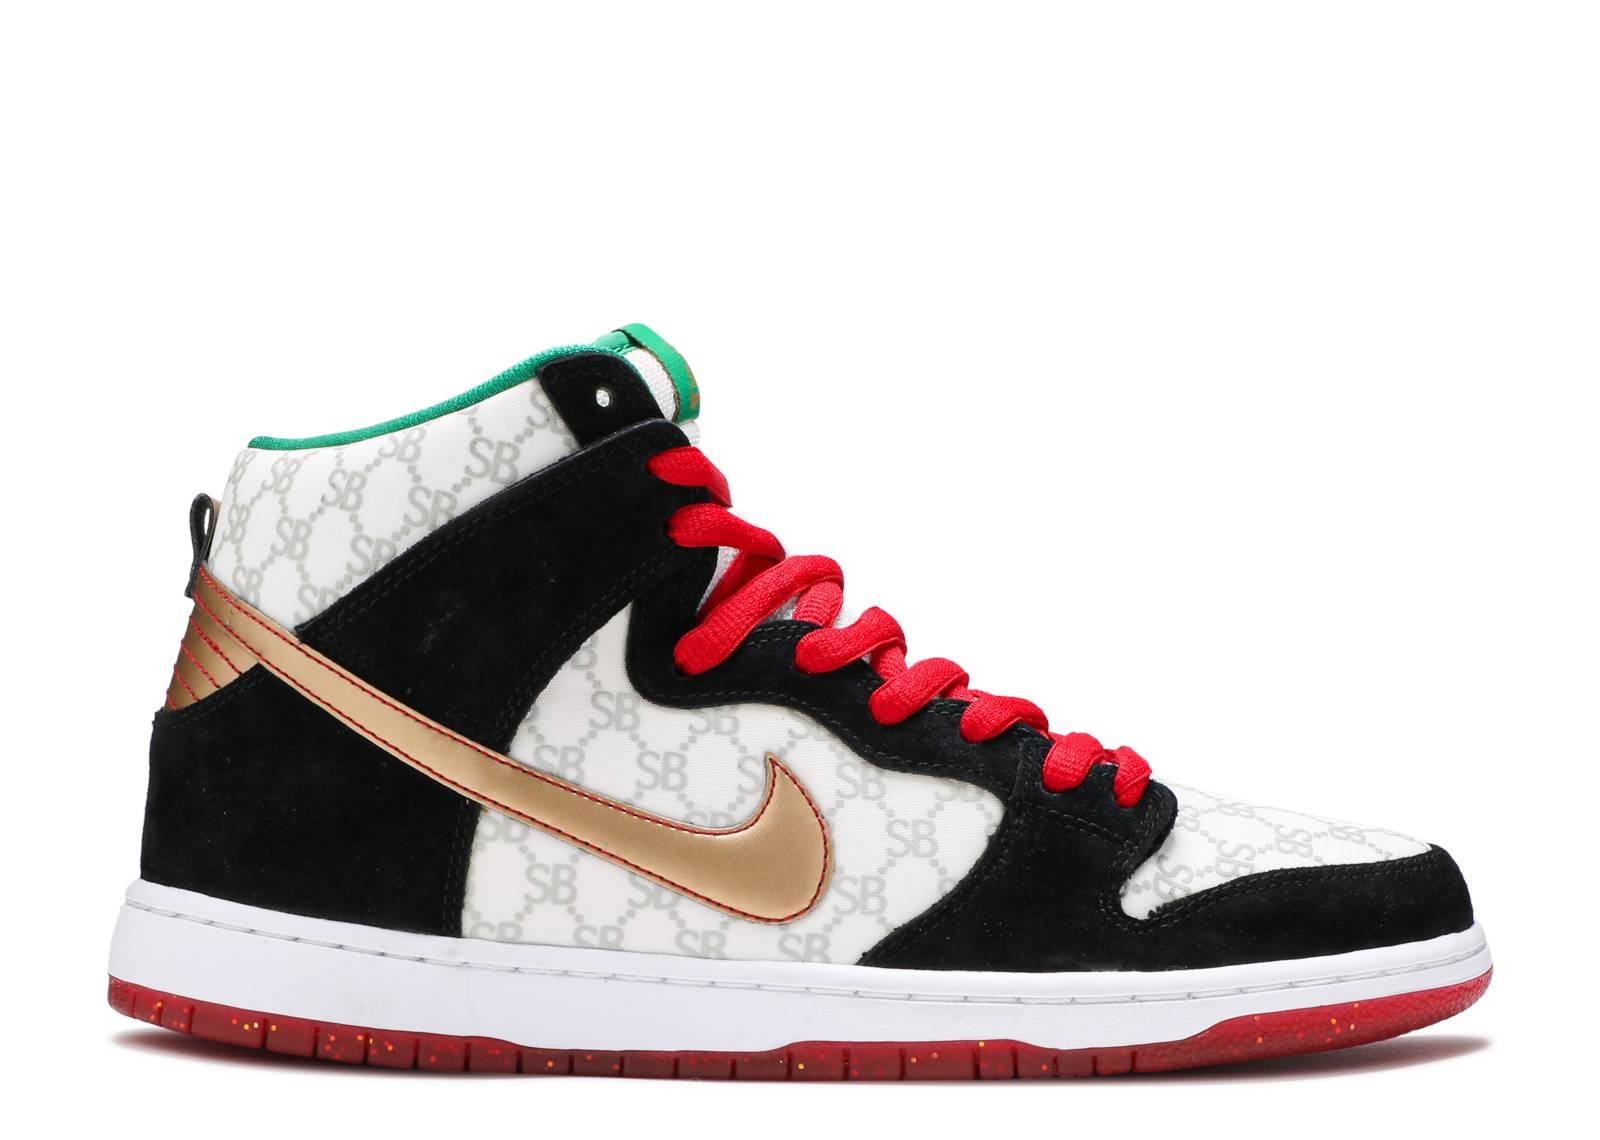 nike. dunk high sb black sheep paid in full